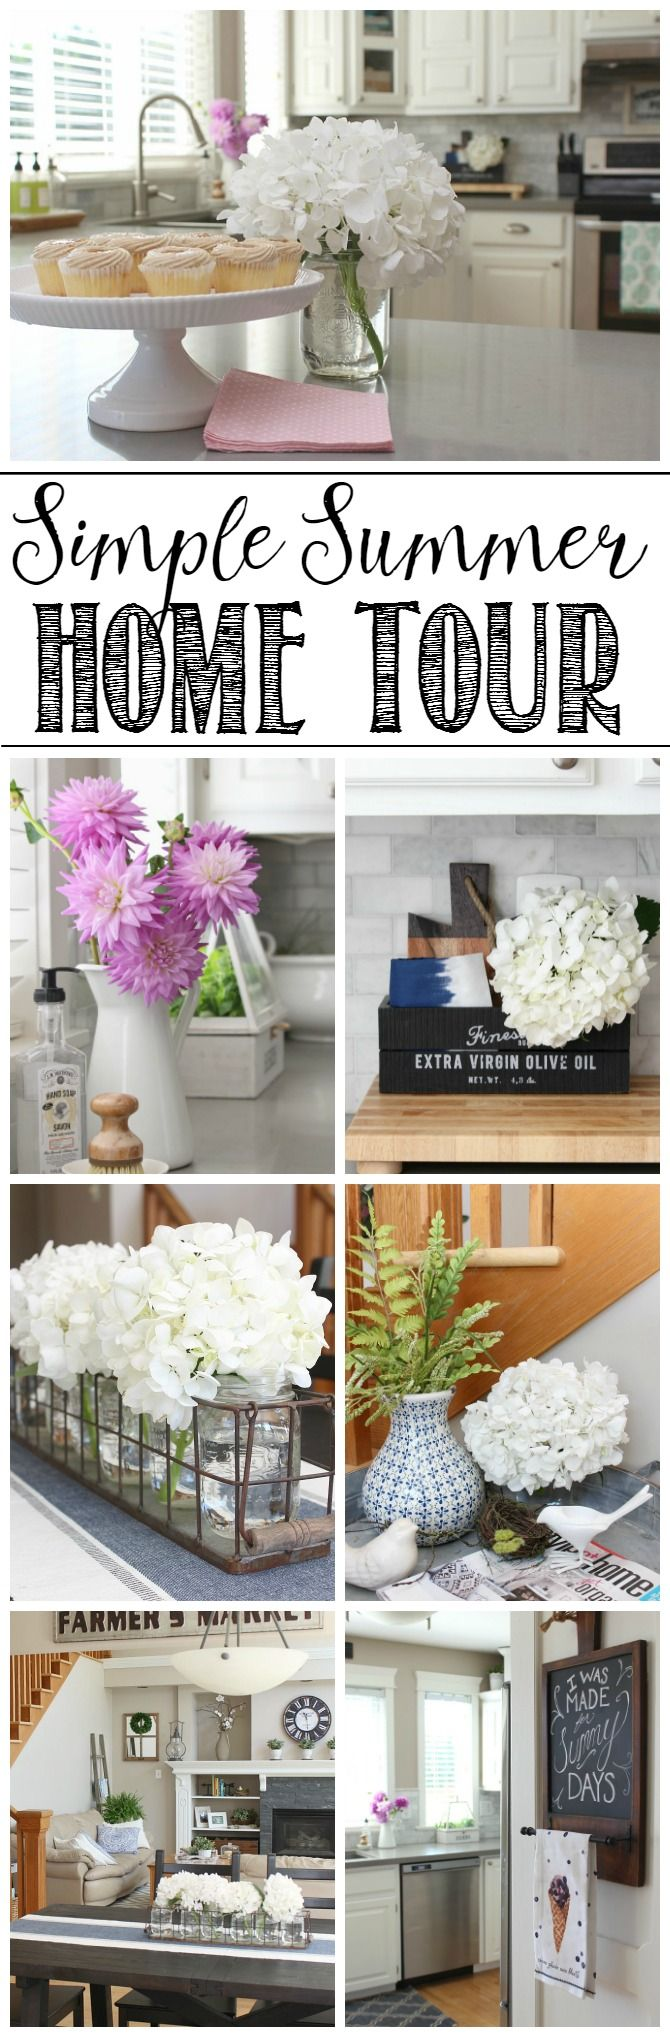 Beautiful simple summer home tour and summer decor ideas. Clean and Scentsible #OMHGWW